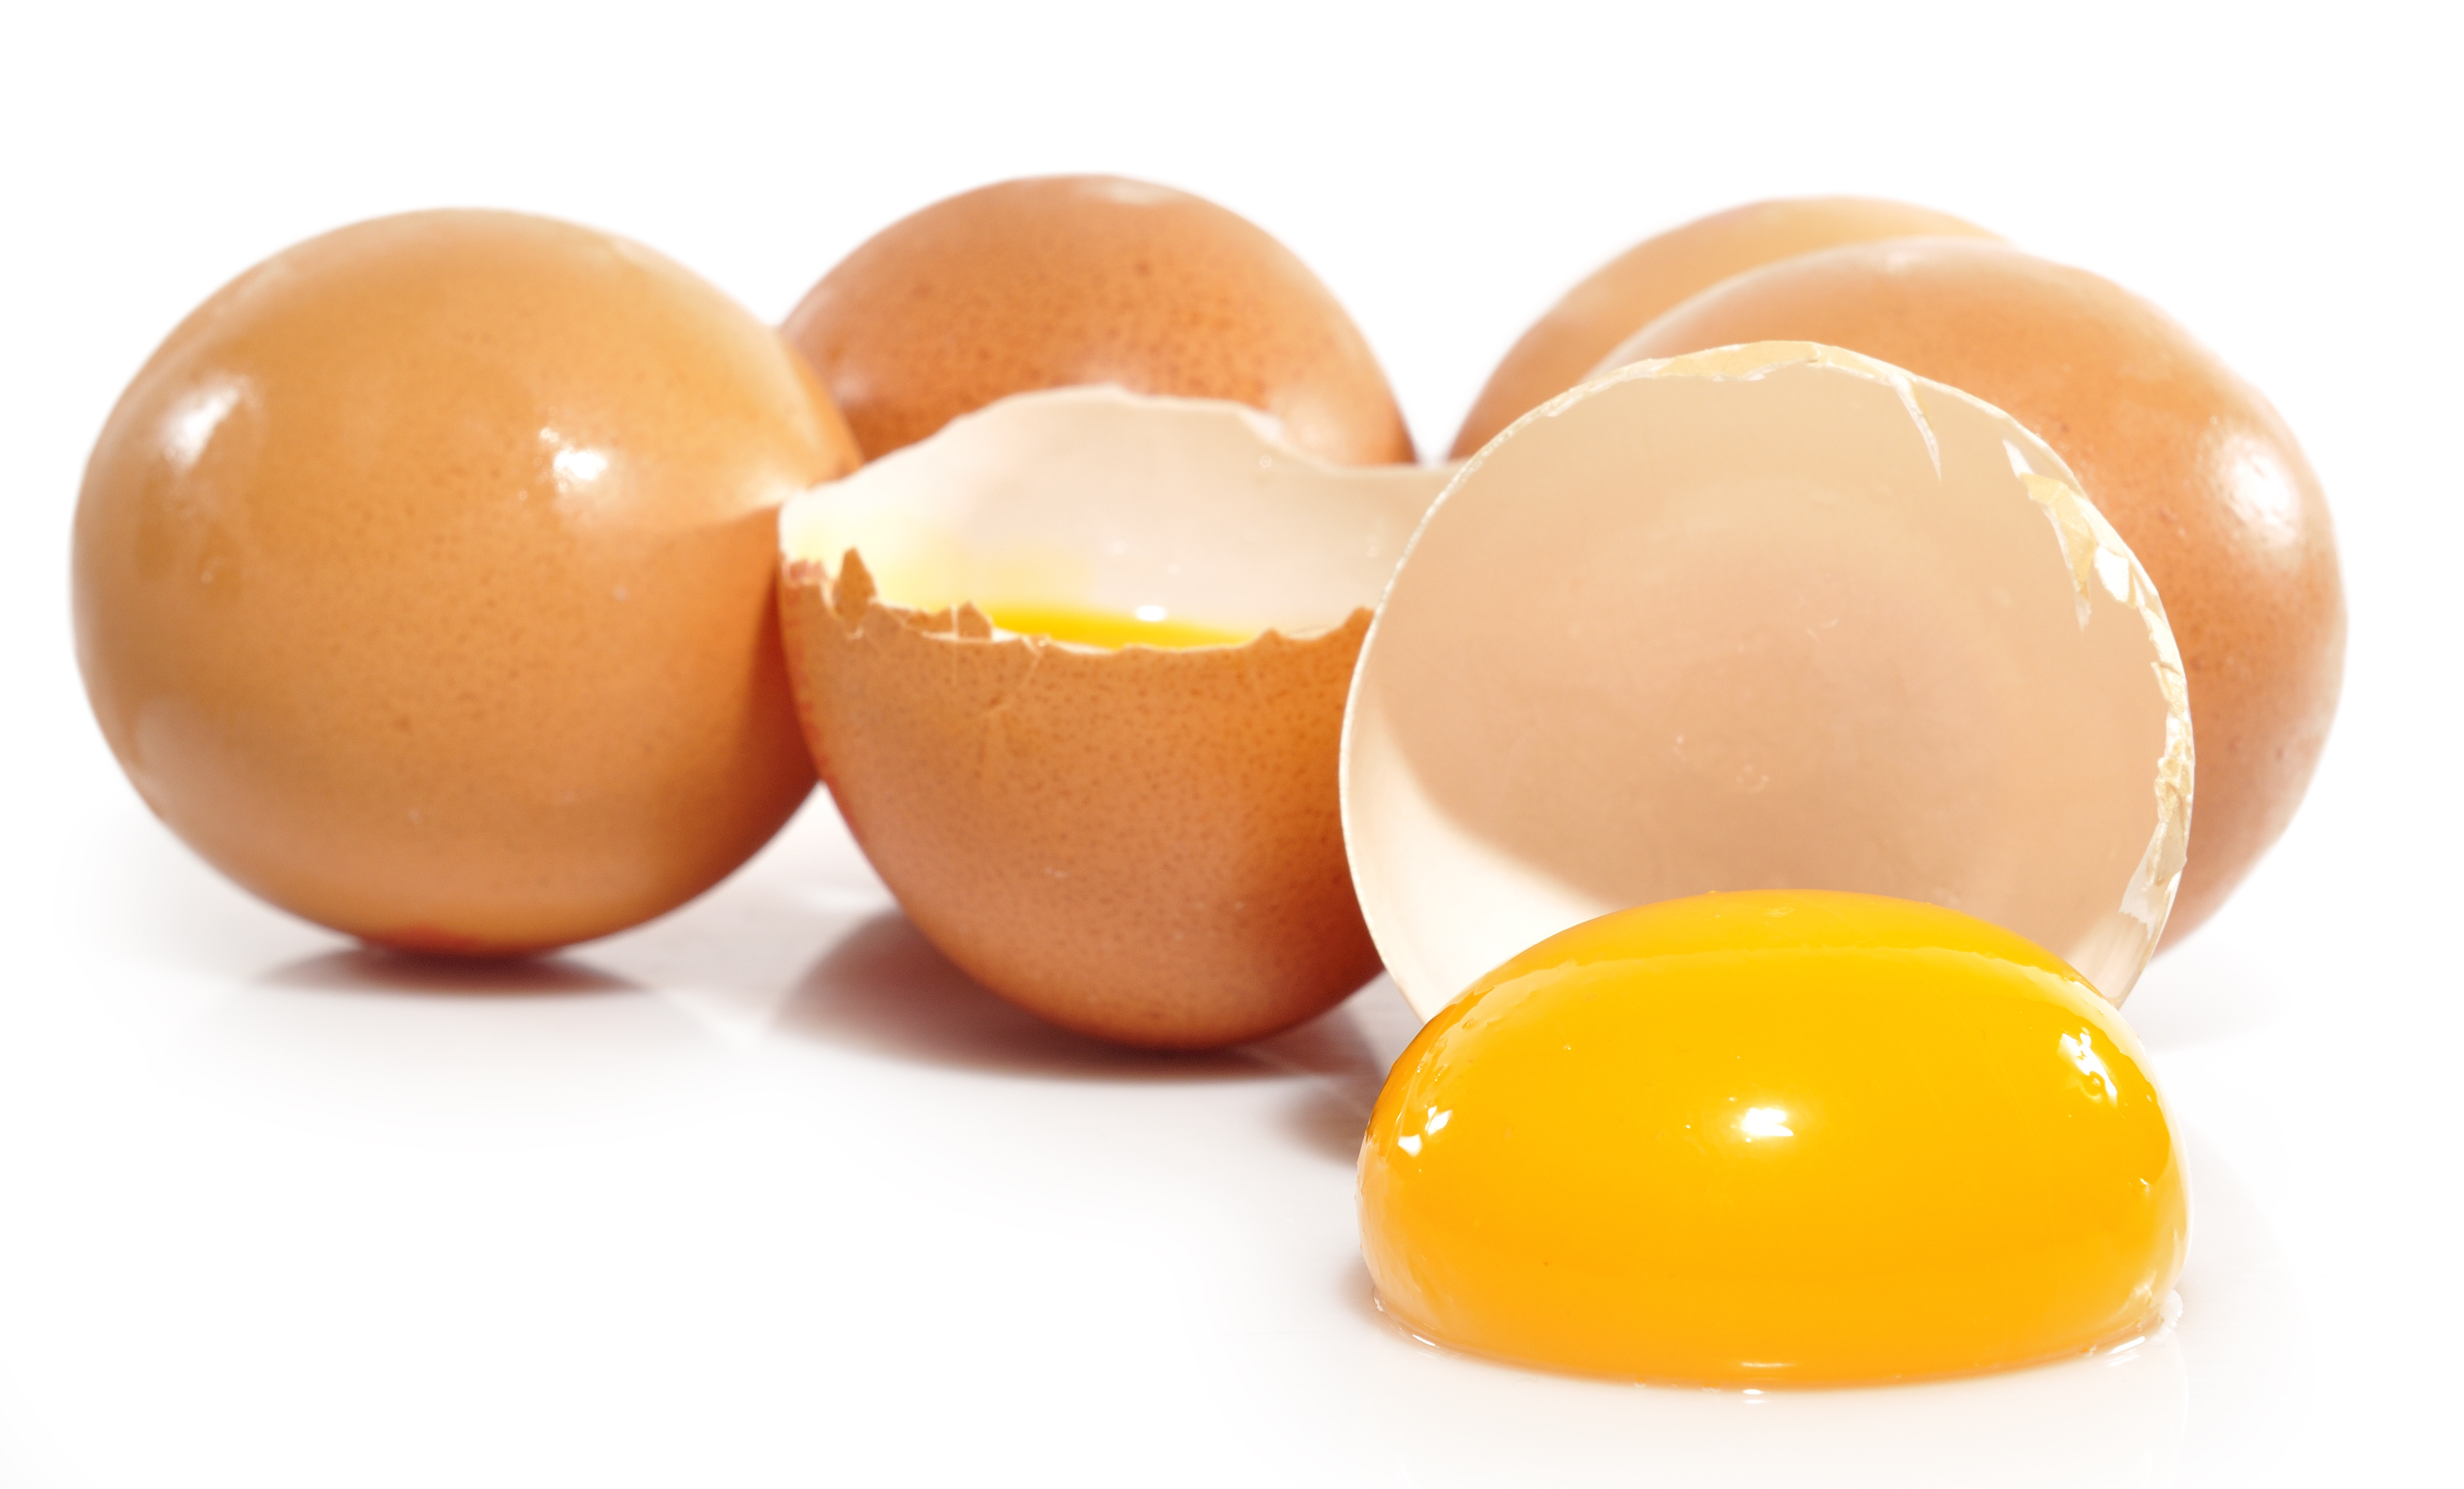 3 eggs a day keeps the doctor away - eggs for your health